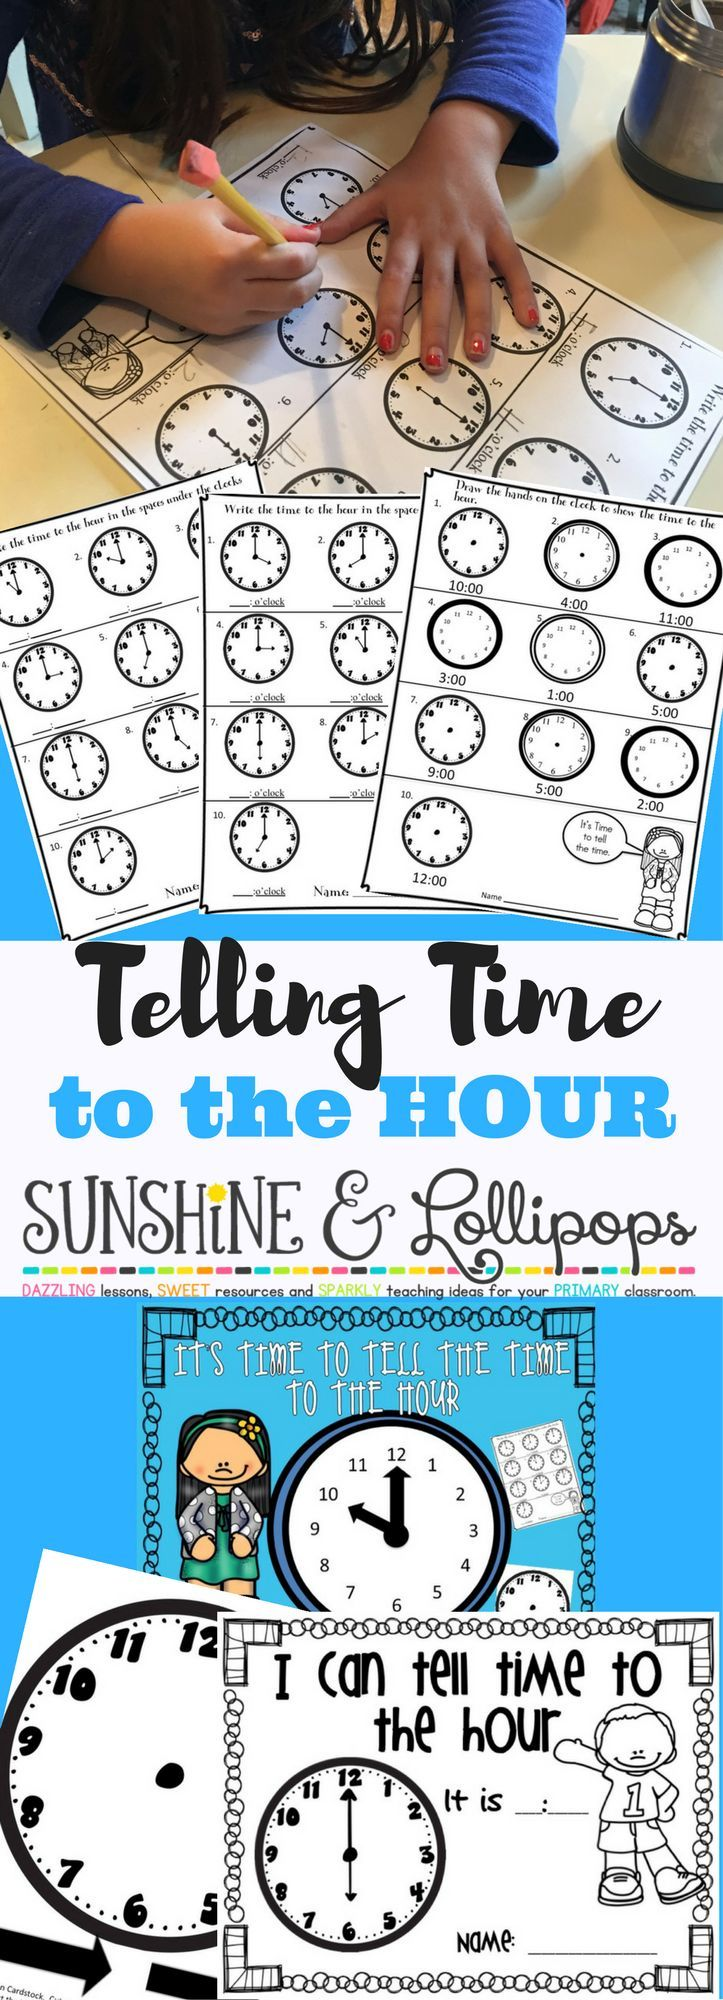 79 best ***It is Time to Tell the Time images on Pinterest ...